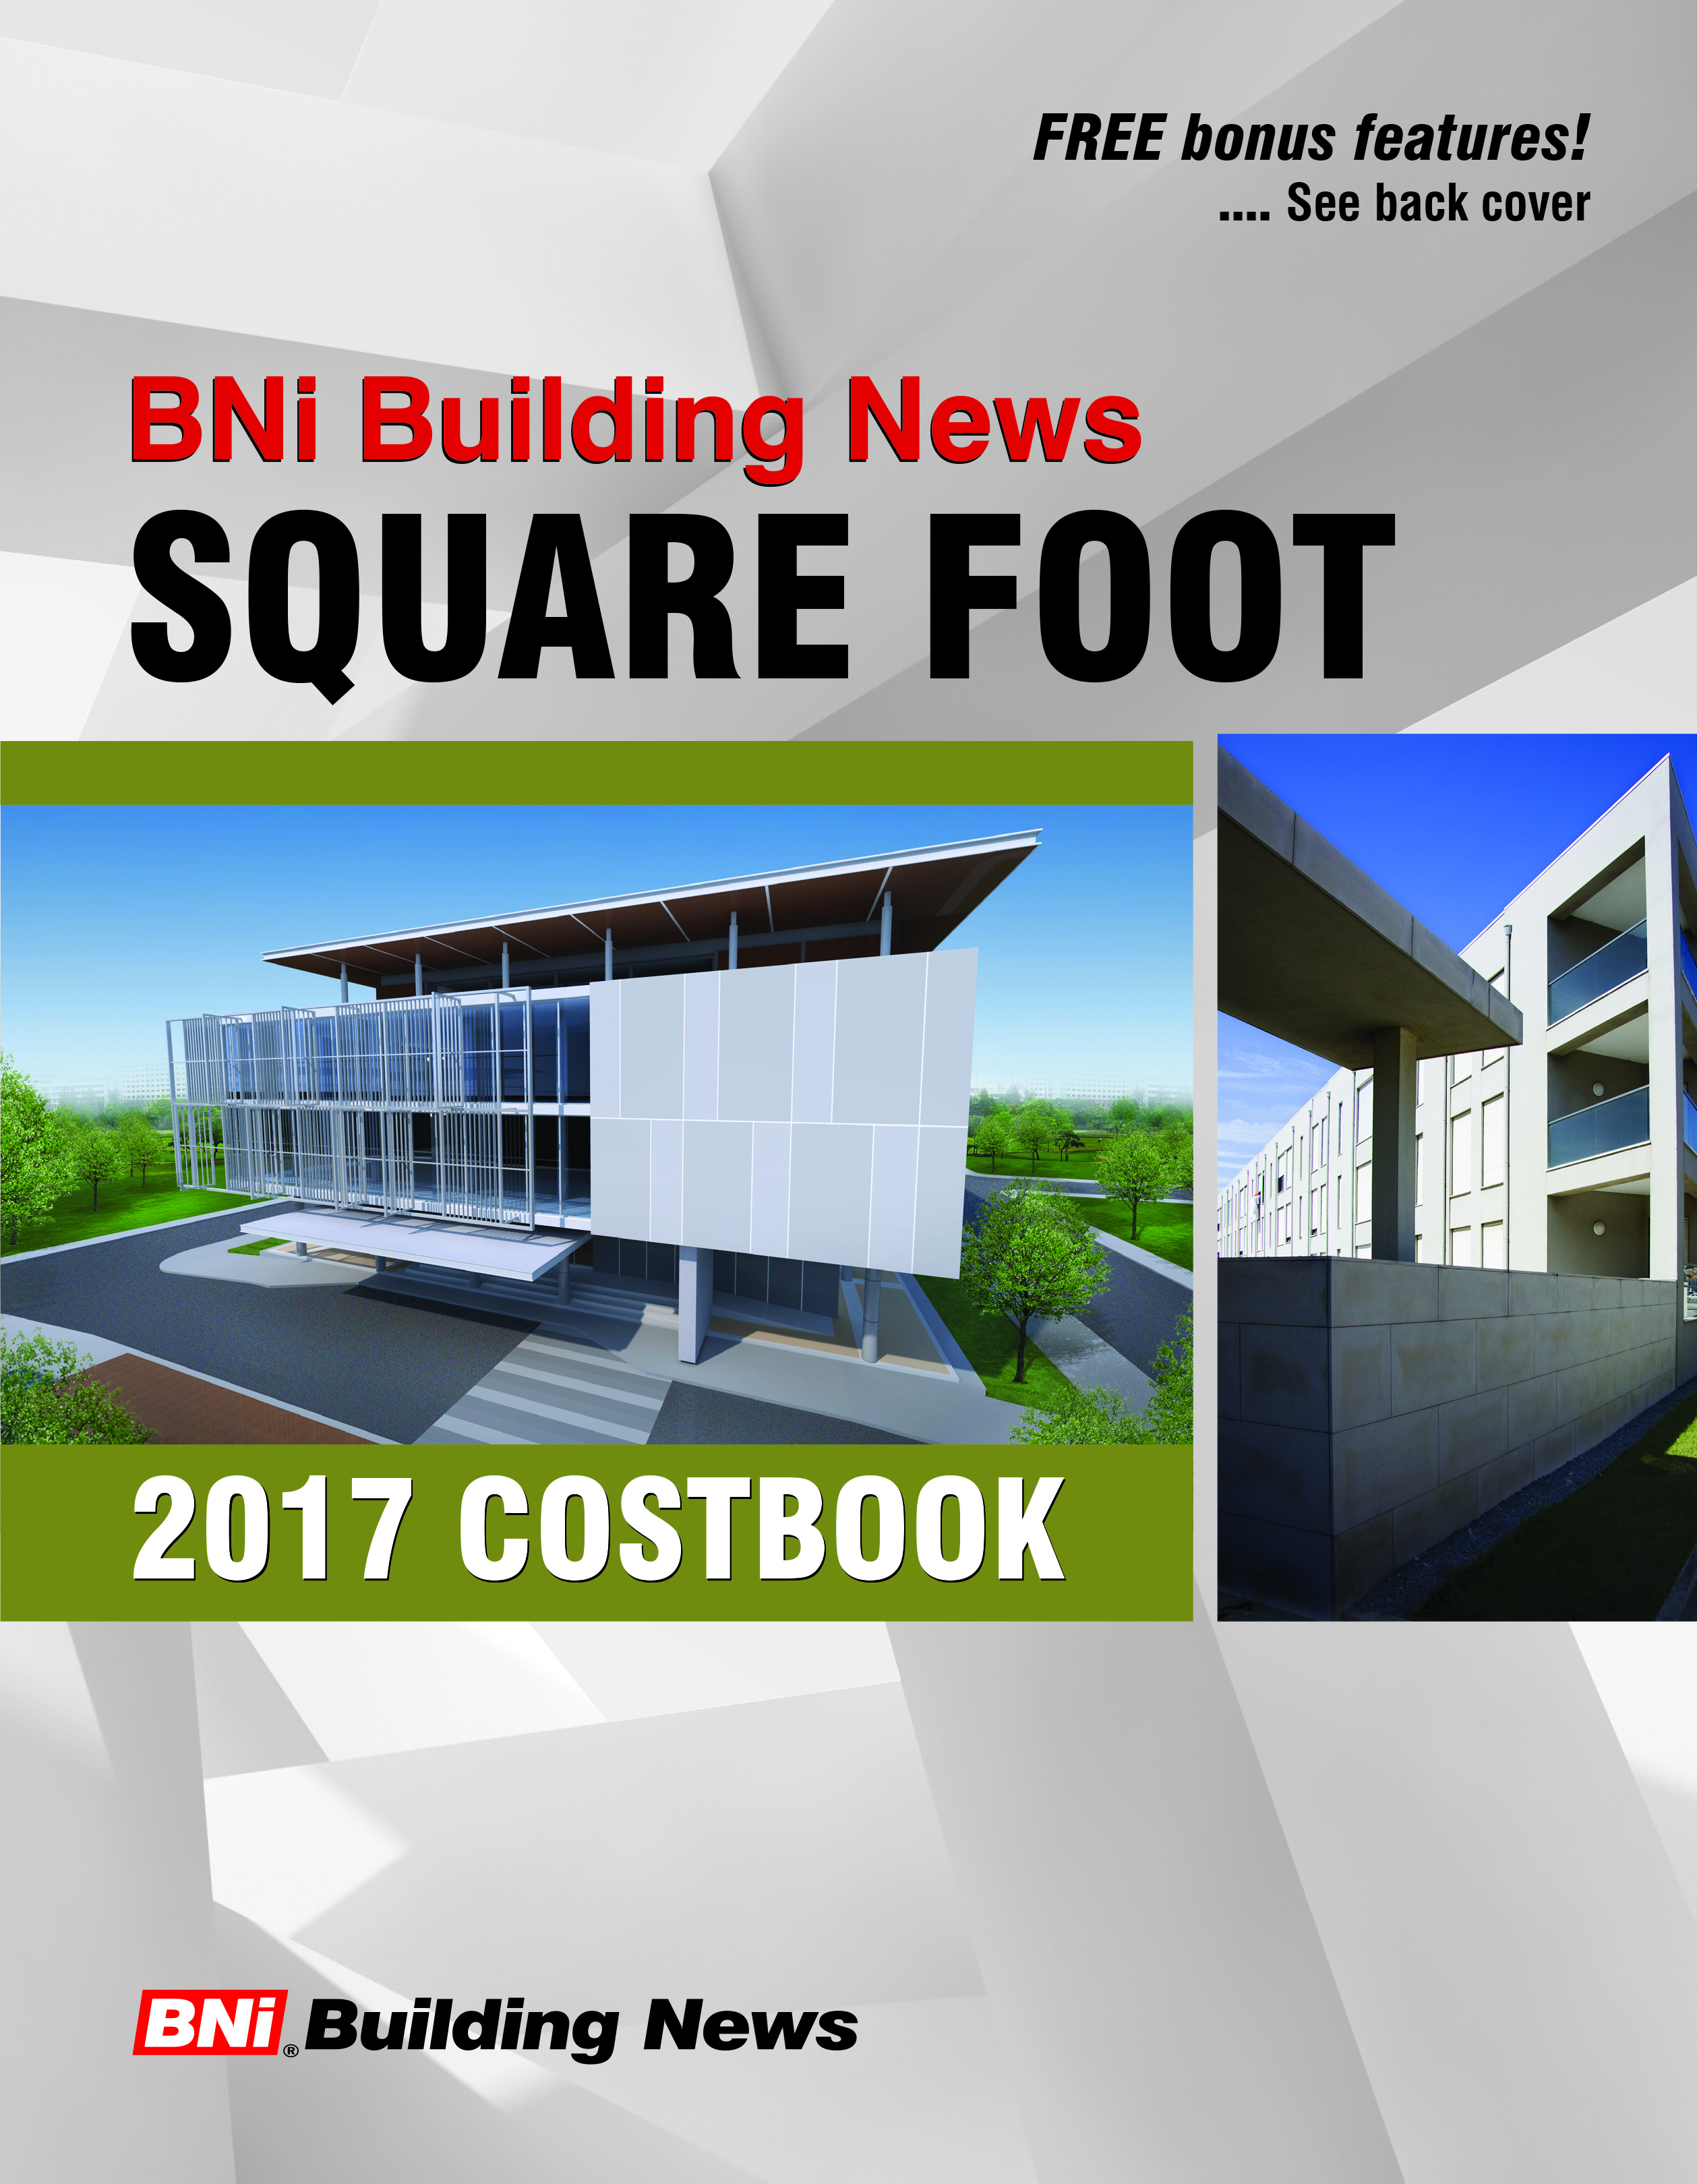 BNI Square Foot Costbook 2017